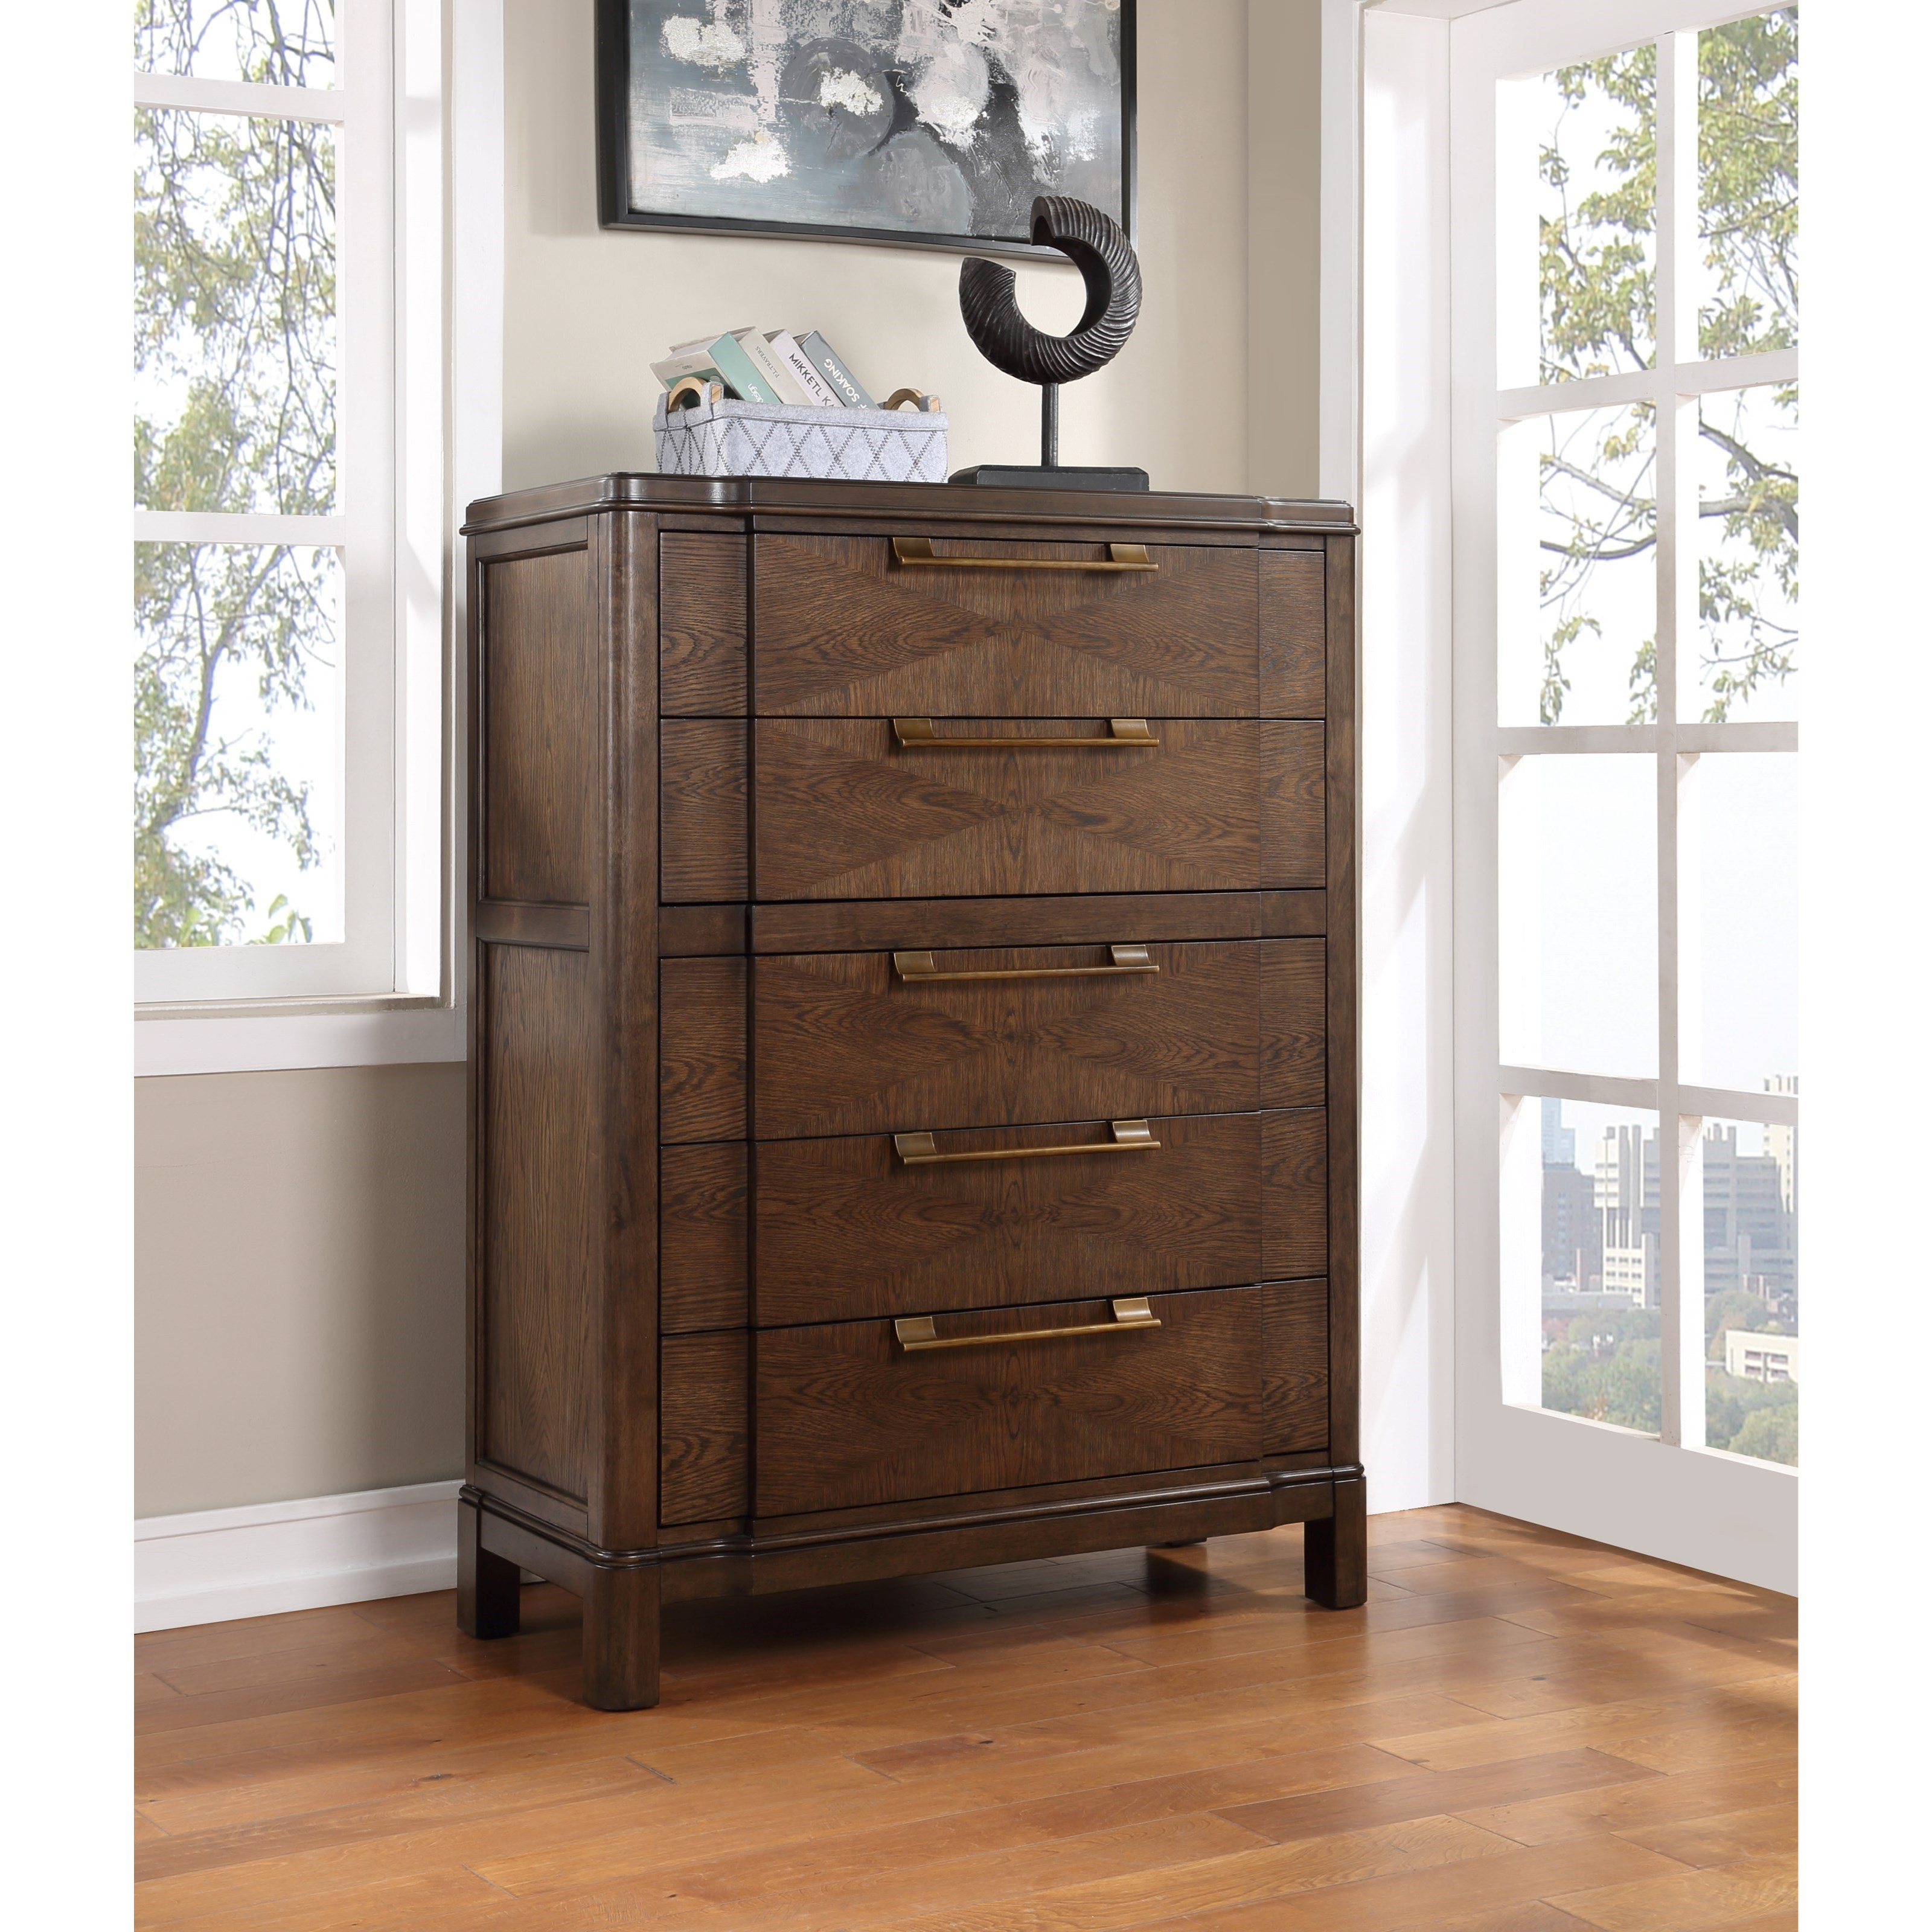 Milan Drawer Chest by Steve Silver at Northeast Factory Direct